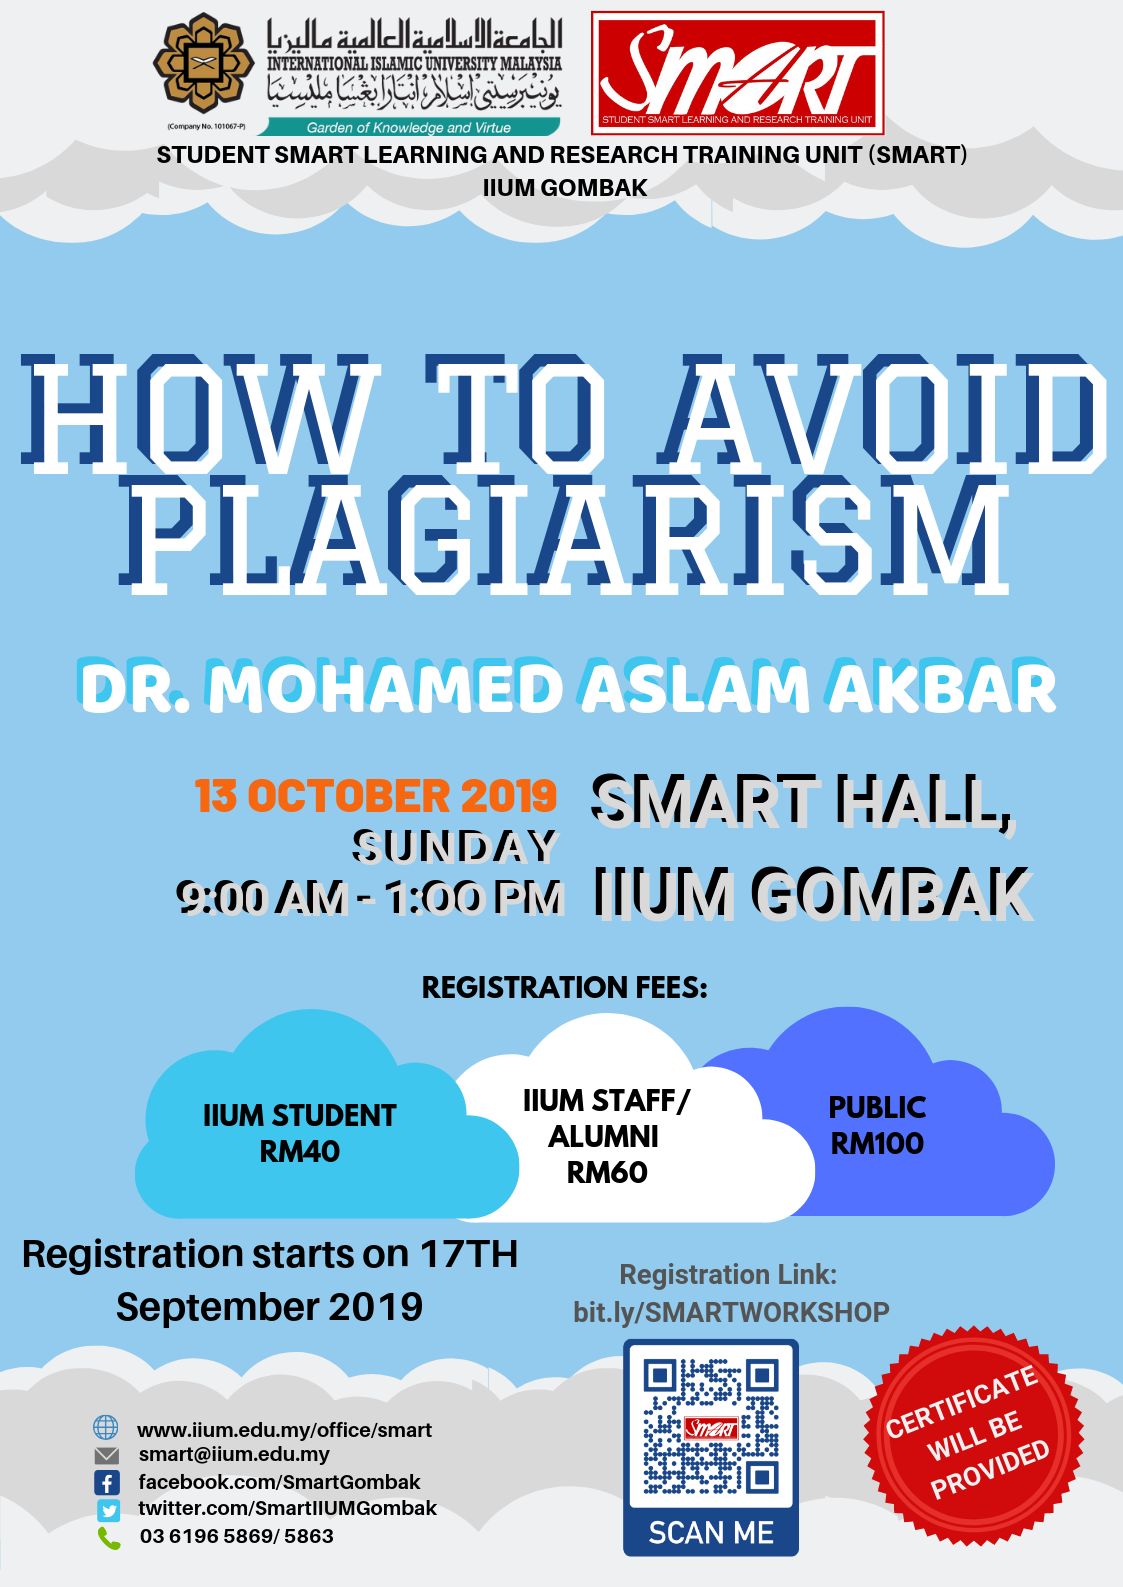 SEM 1, 19/20 - WORKSHOP - HOW TO AVOID PLAGIARISM